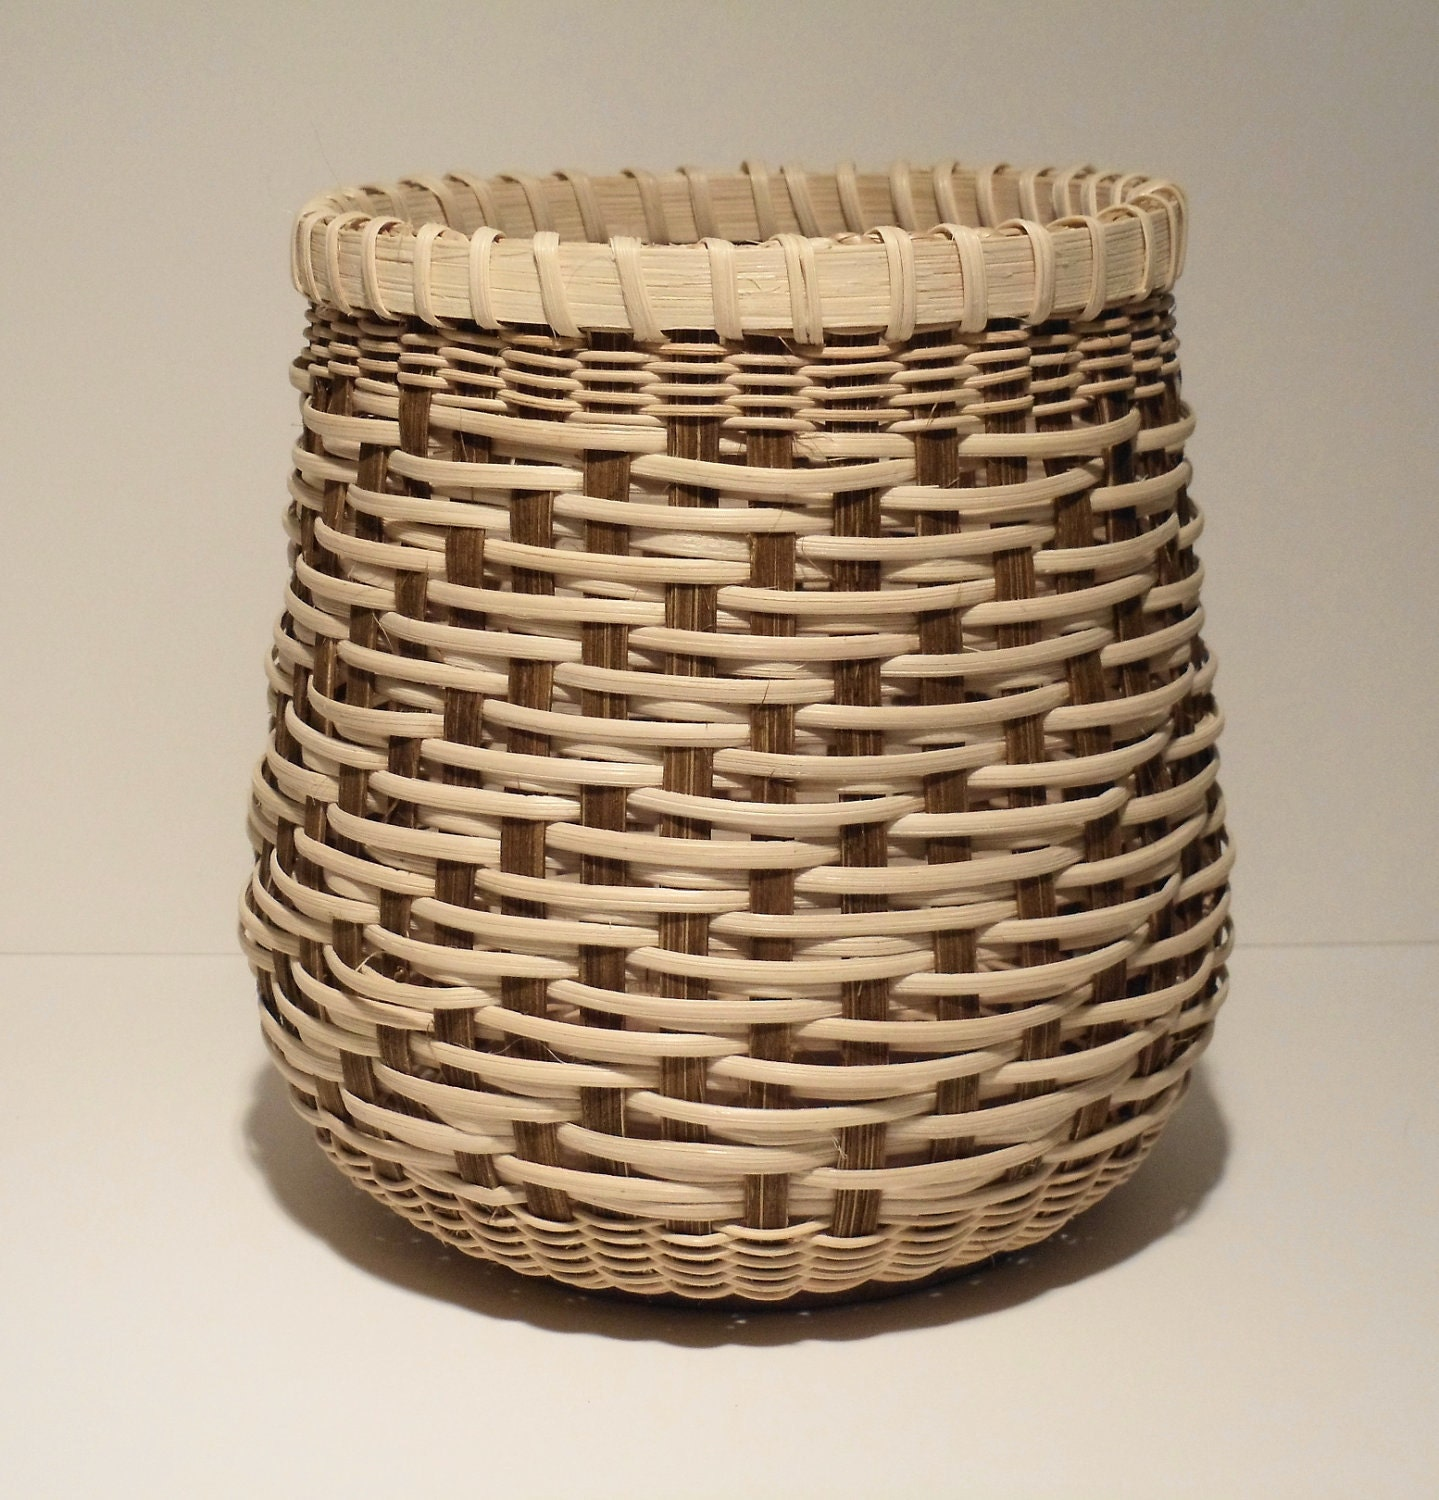 Basket Weaving With Reeds : Woven twill basket in brown and natural reed by